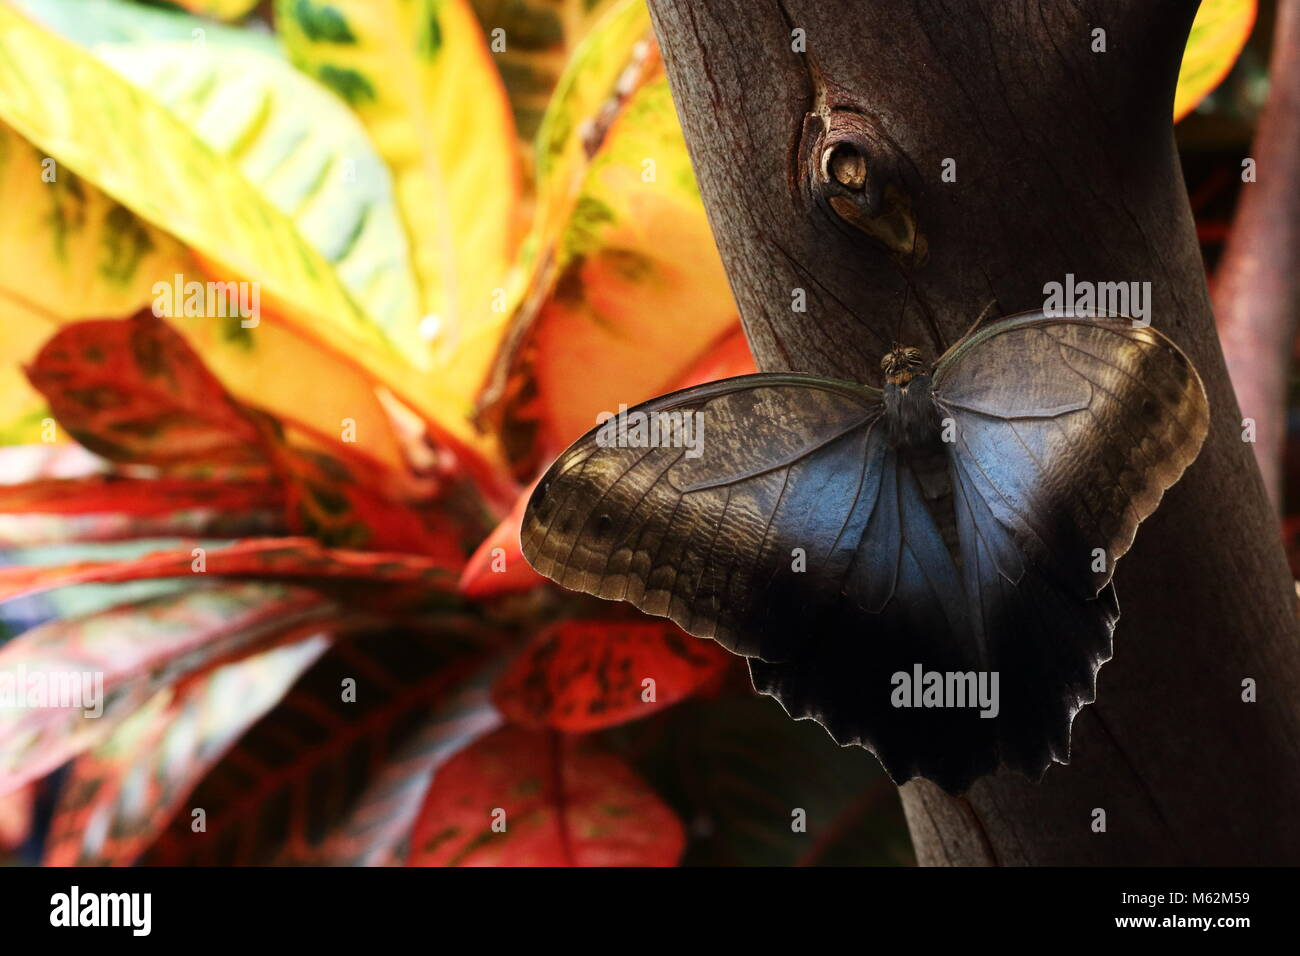 Butterfly sitting on a thin tree having extended wings with yellow flower in a background - Stock Image